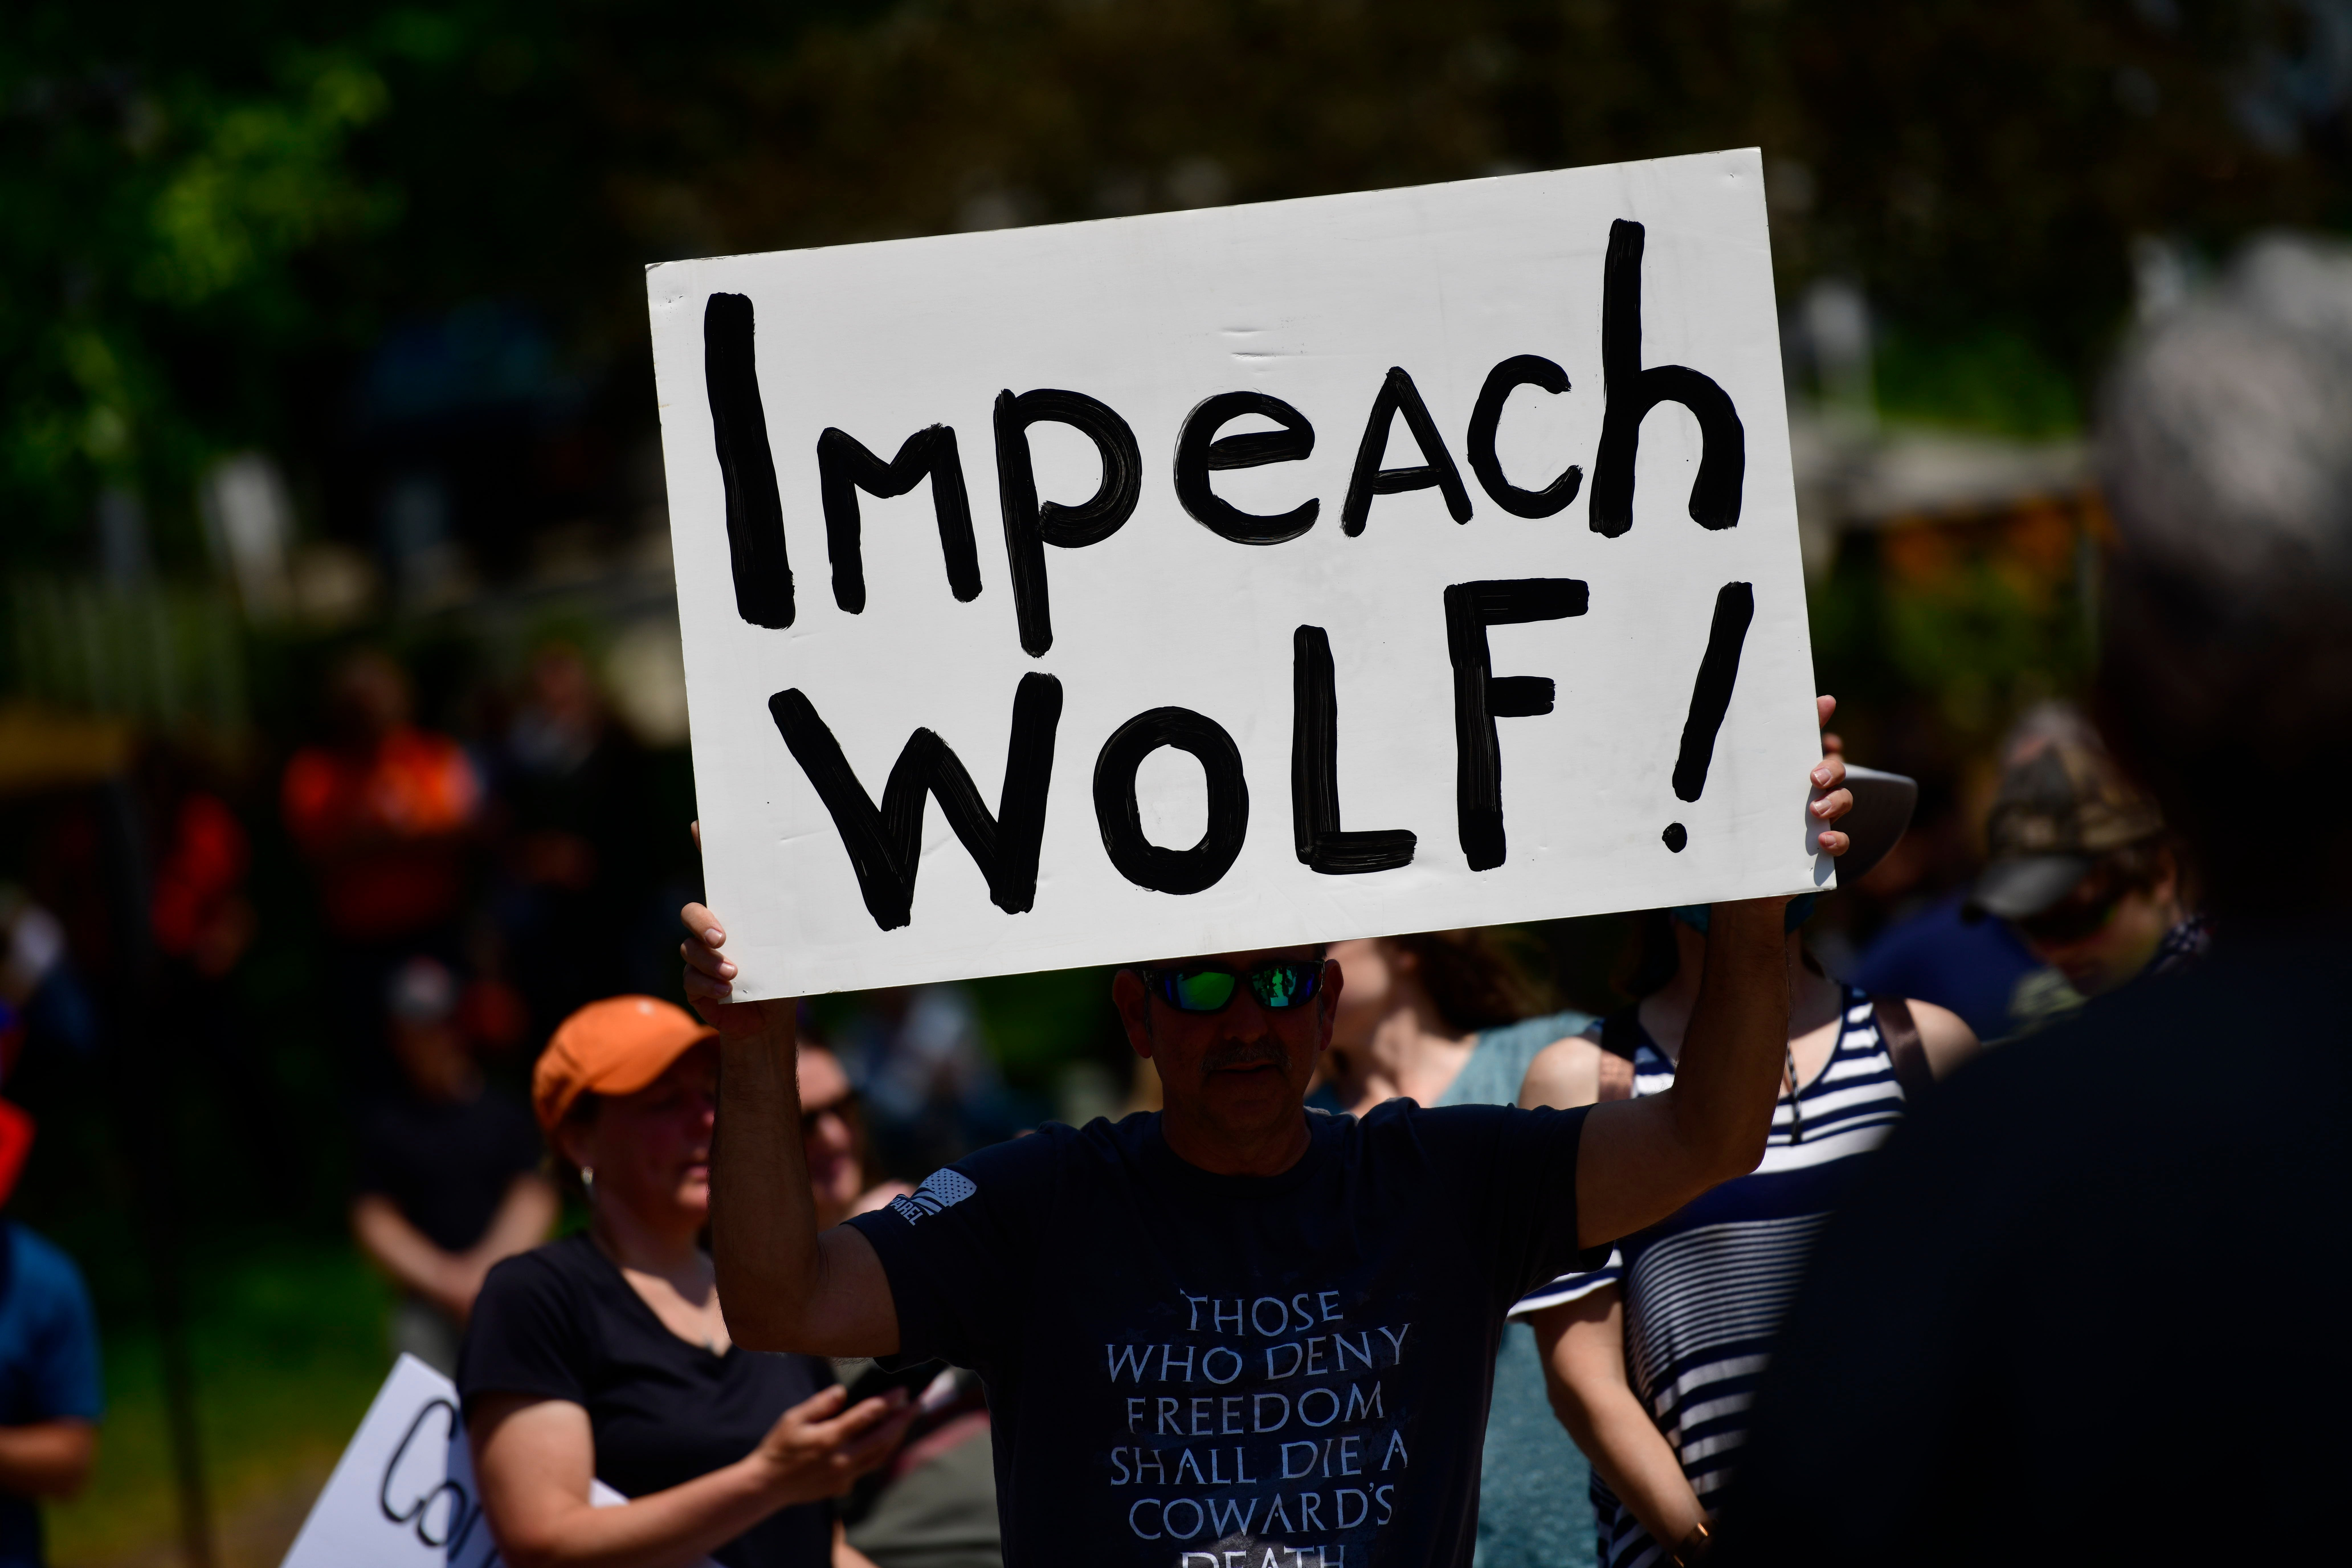 """A demonstrator holds a sign stating """"Impeach Wolf!"""" during a protest rally against Pennsylvania Governor Tom Wolf. (Photo by Mark Makela/Getty Images)"""